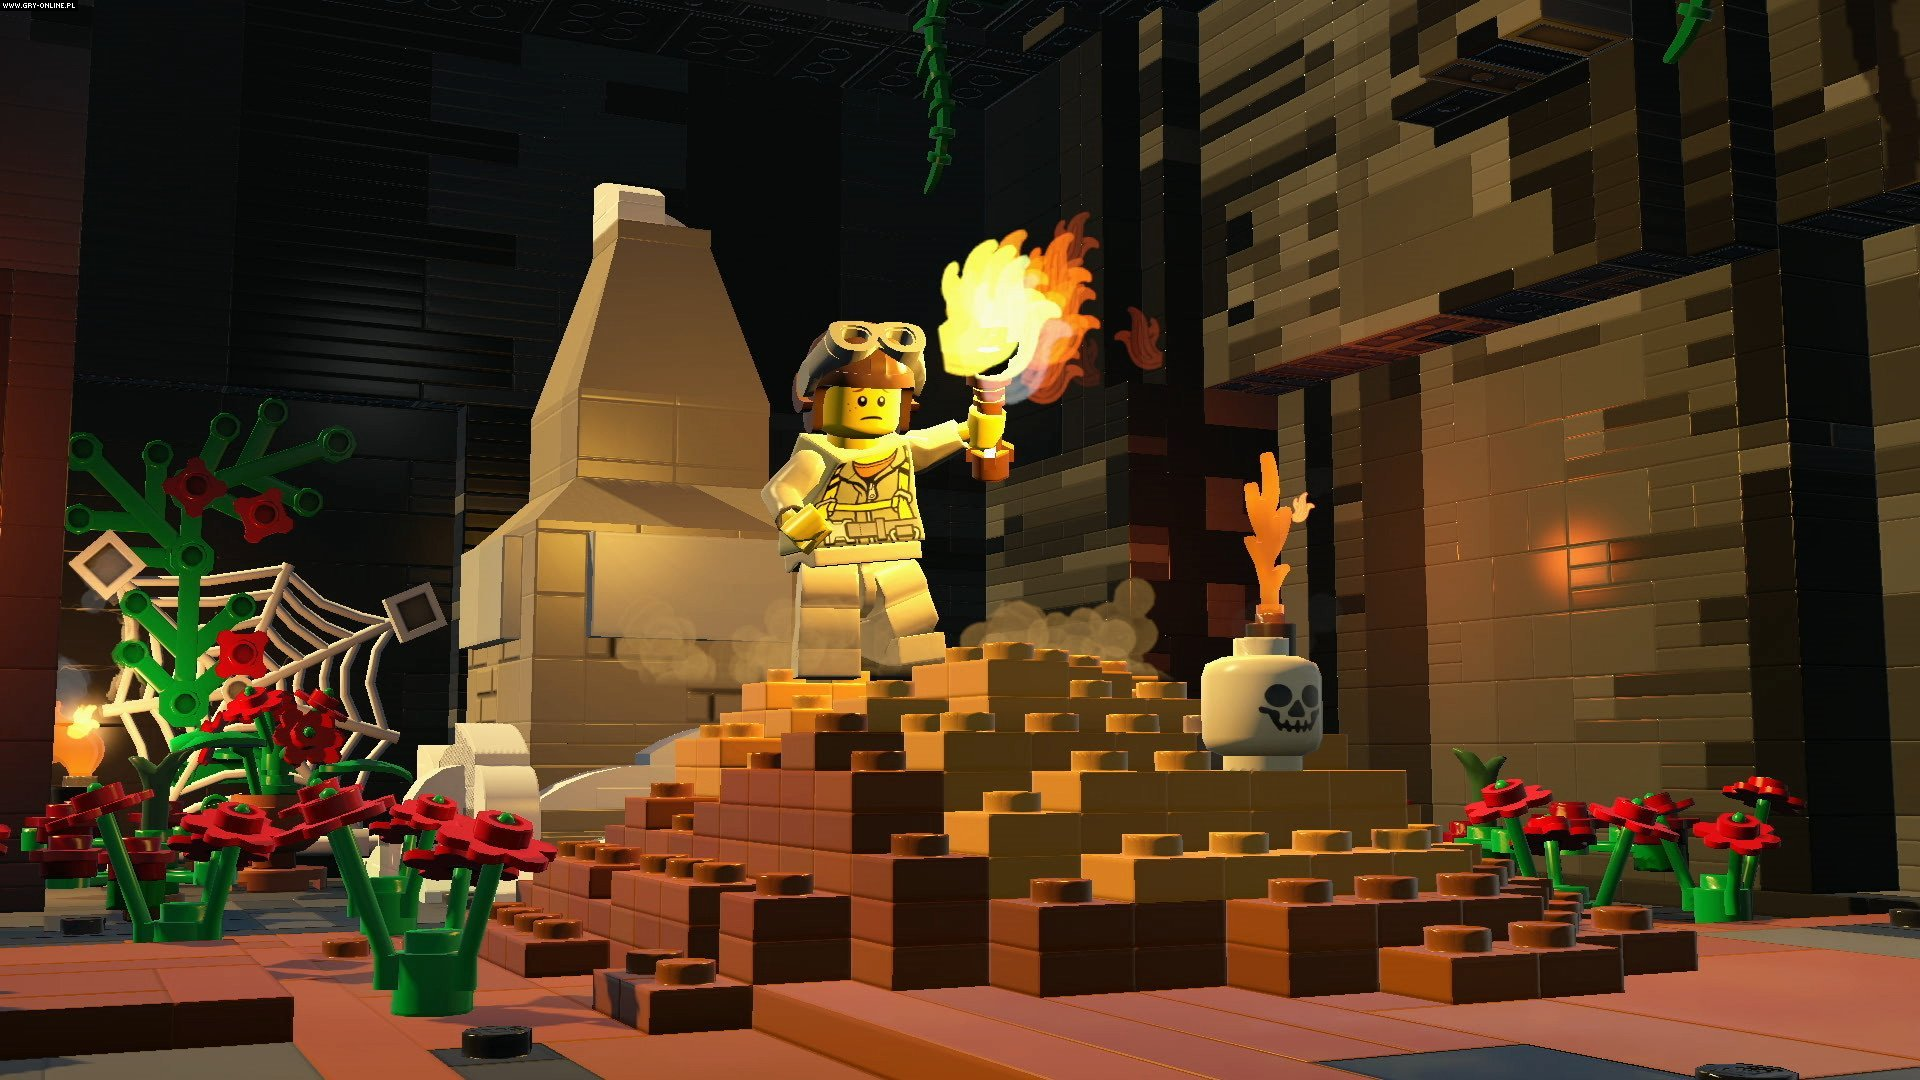 LEGO Worlds PC, PS4, XONE Games Image 6/21, Traveller's Tales, Warner Bros Interactive Entertainment